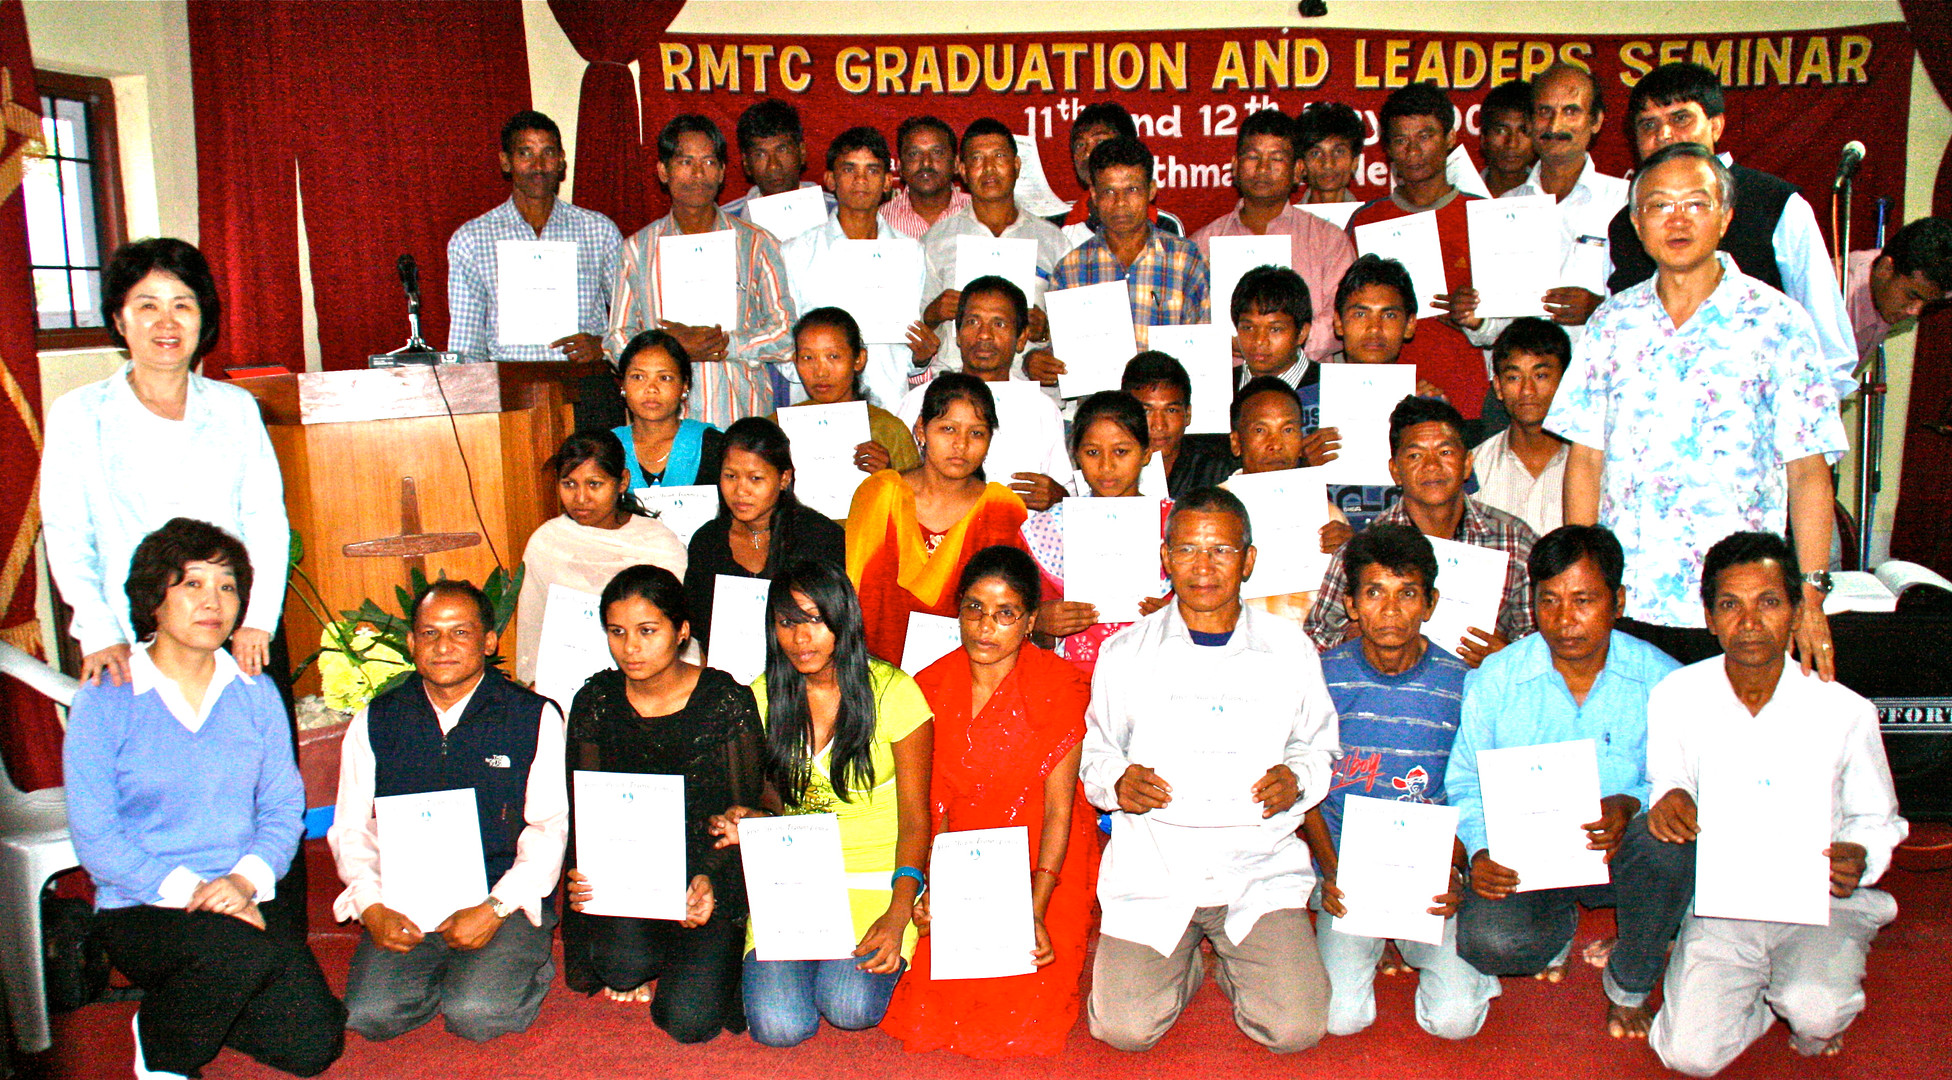 Dr. Lee with the RMTC graduate in Nepal